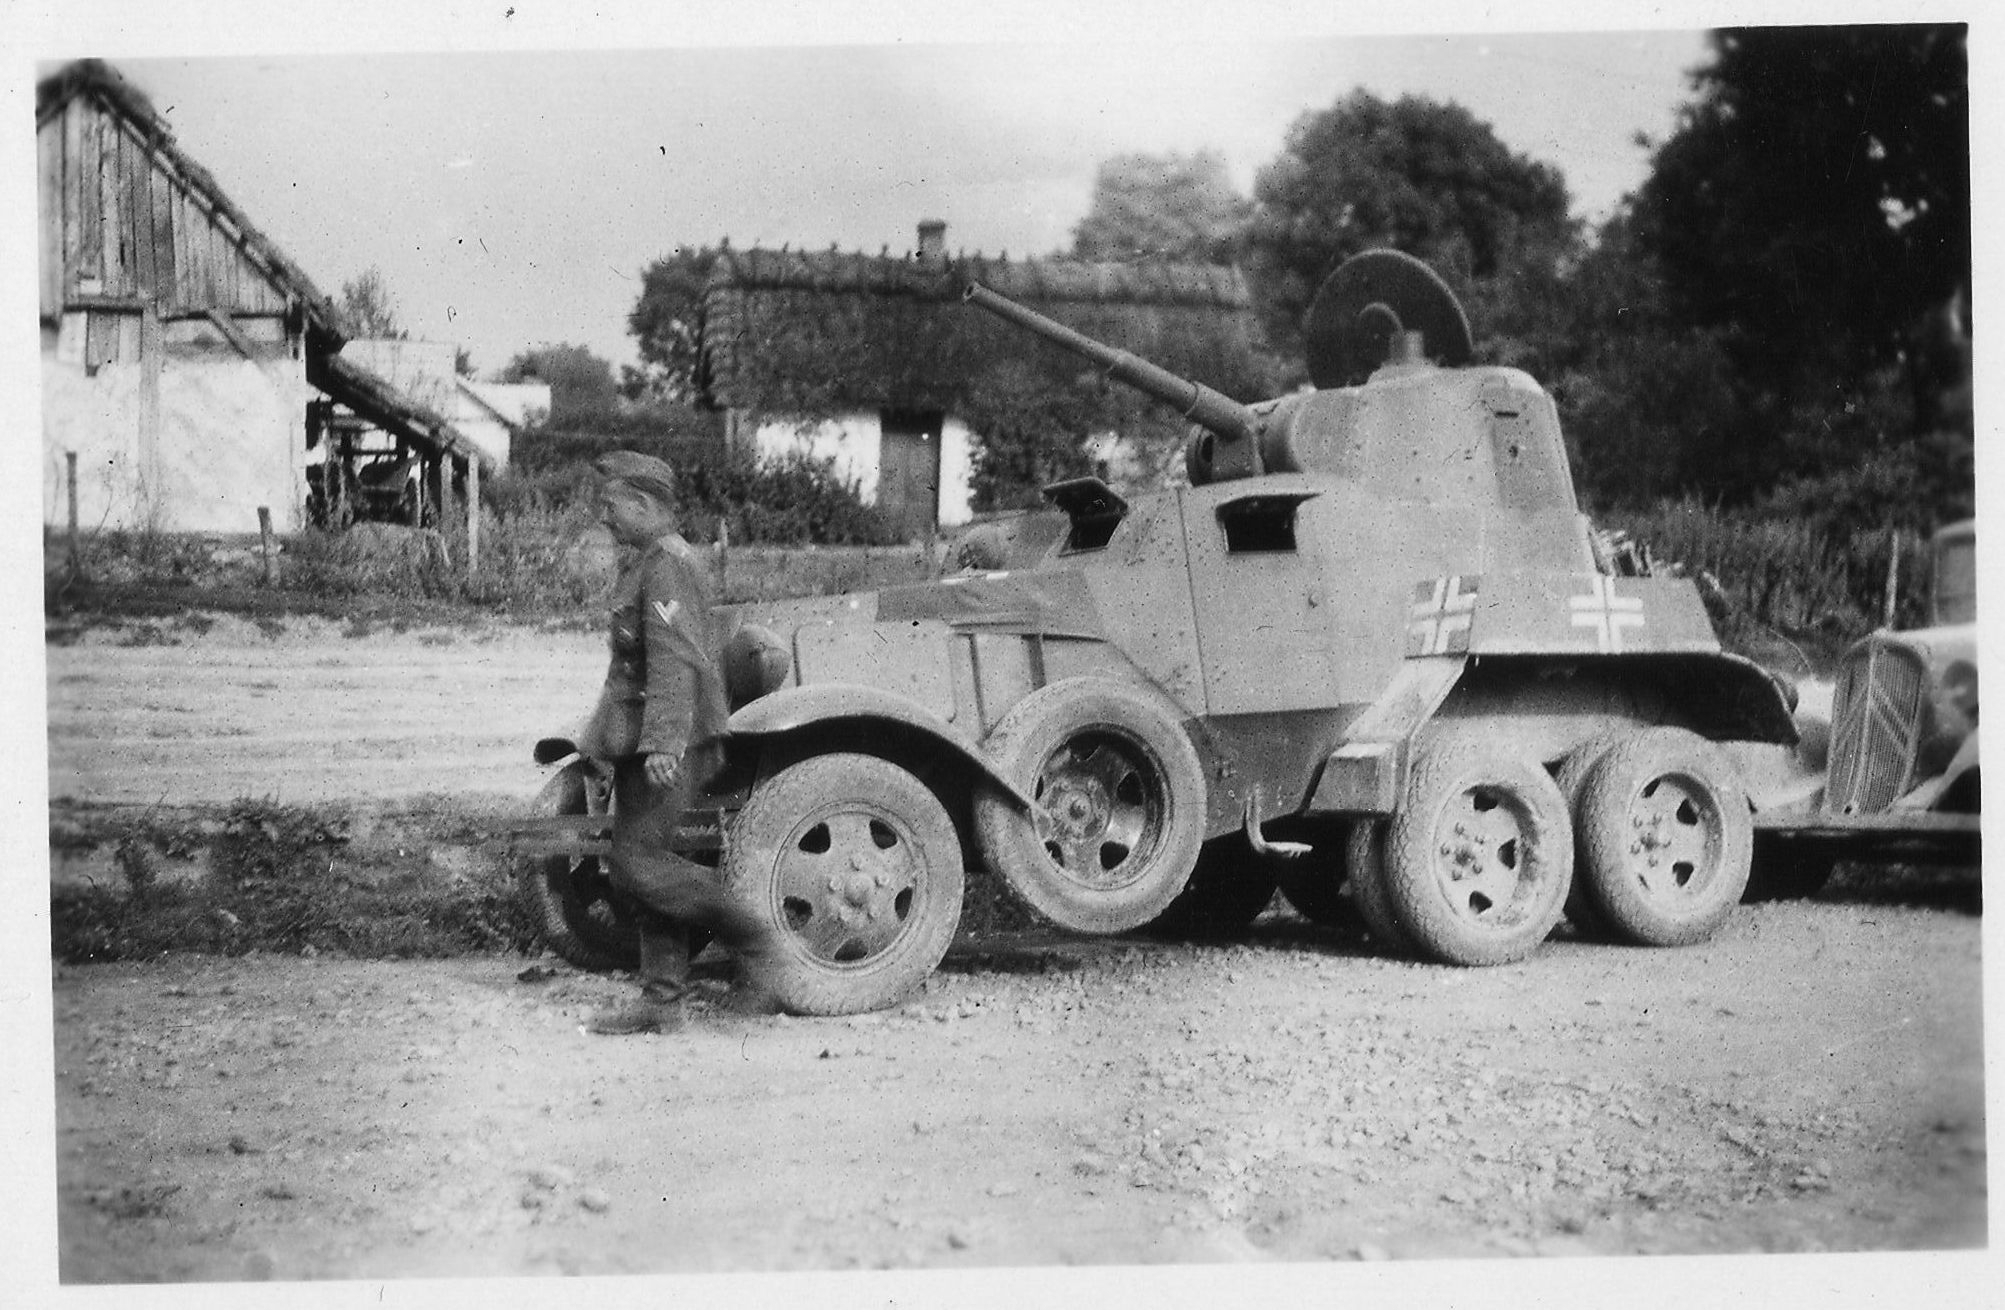 A German captured BA-10M